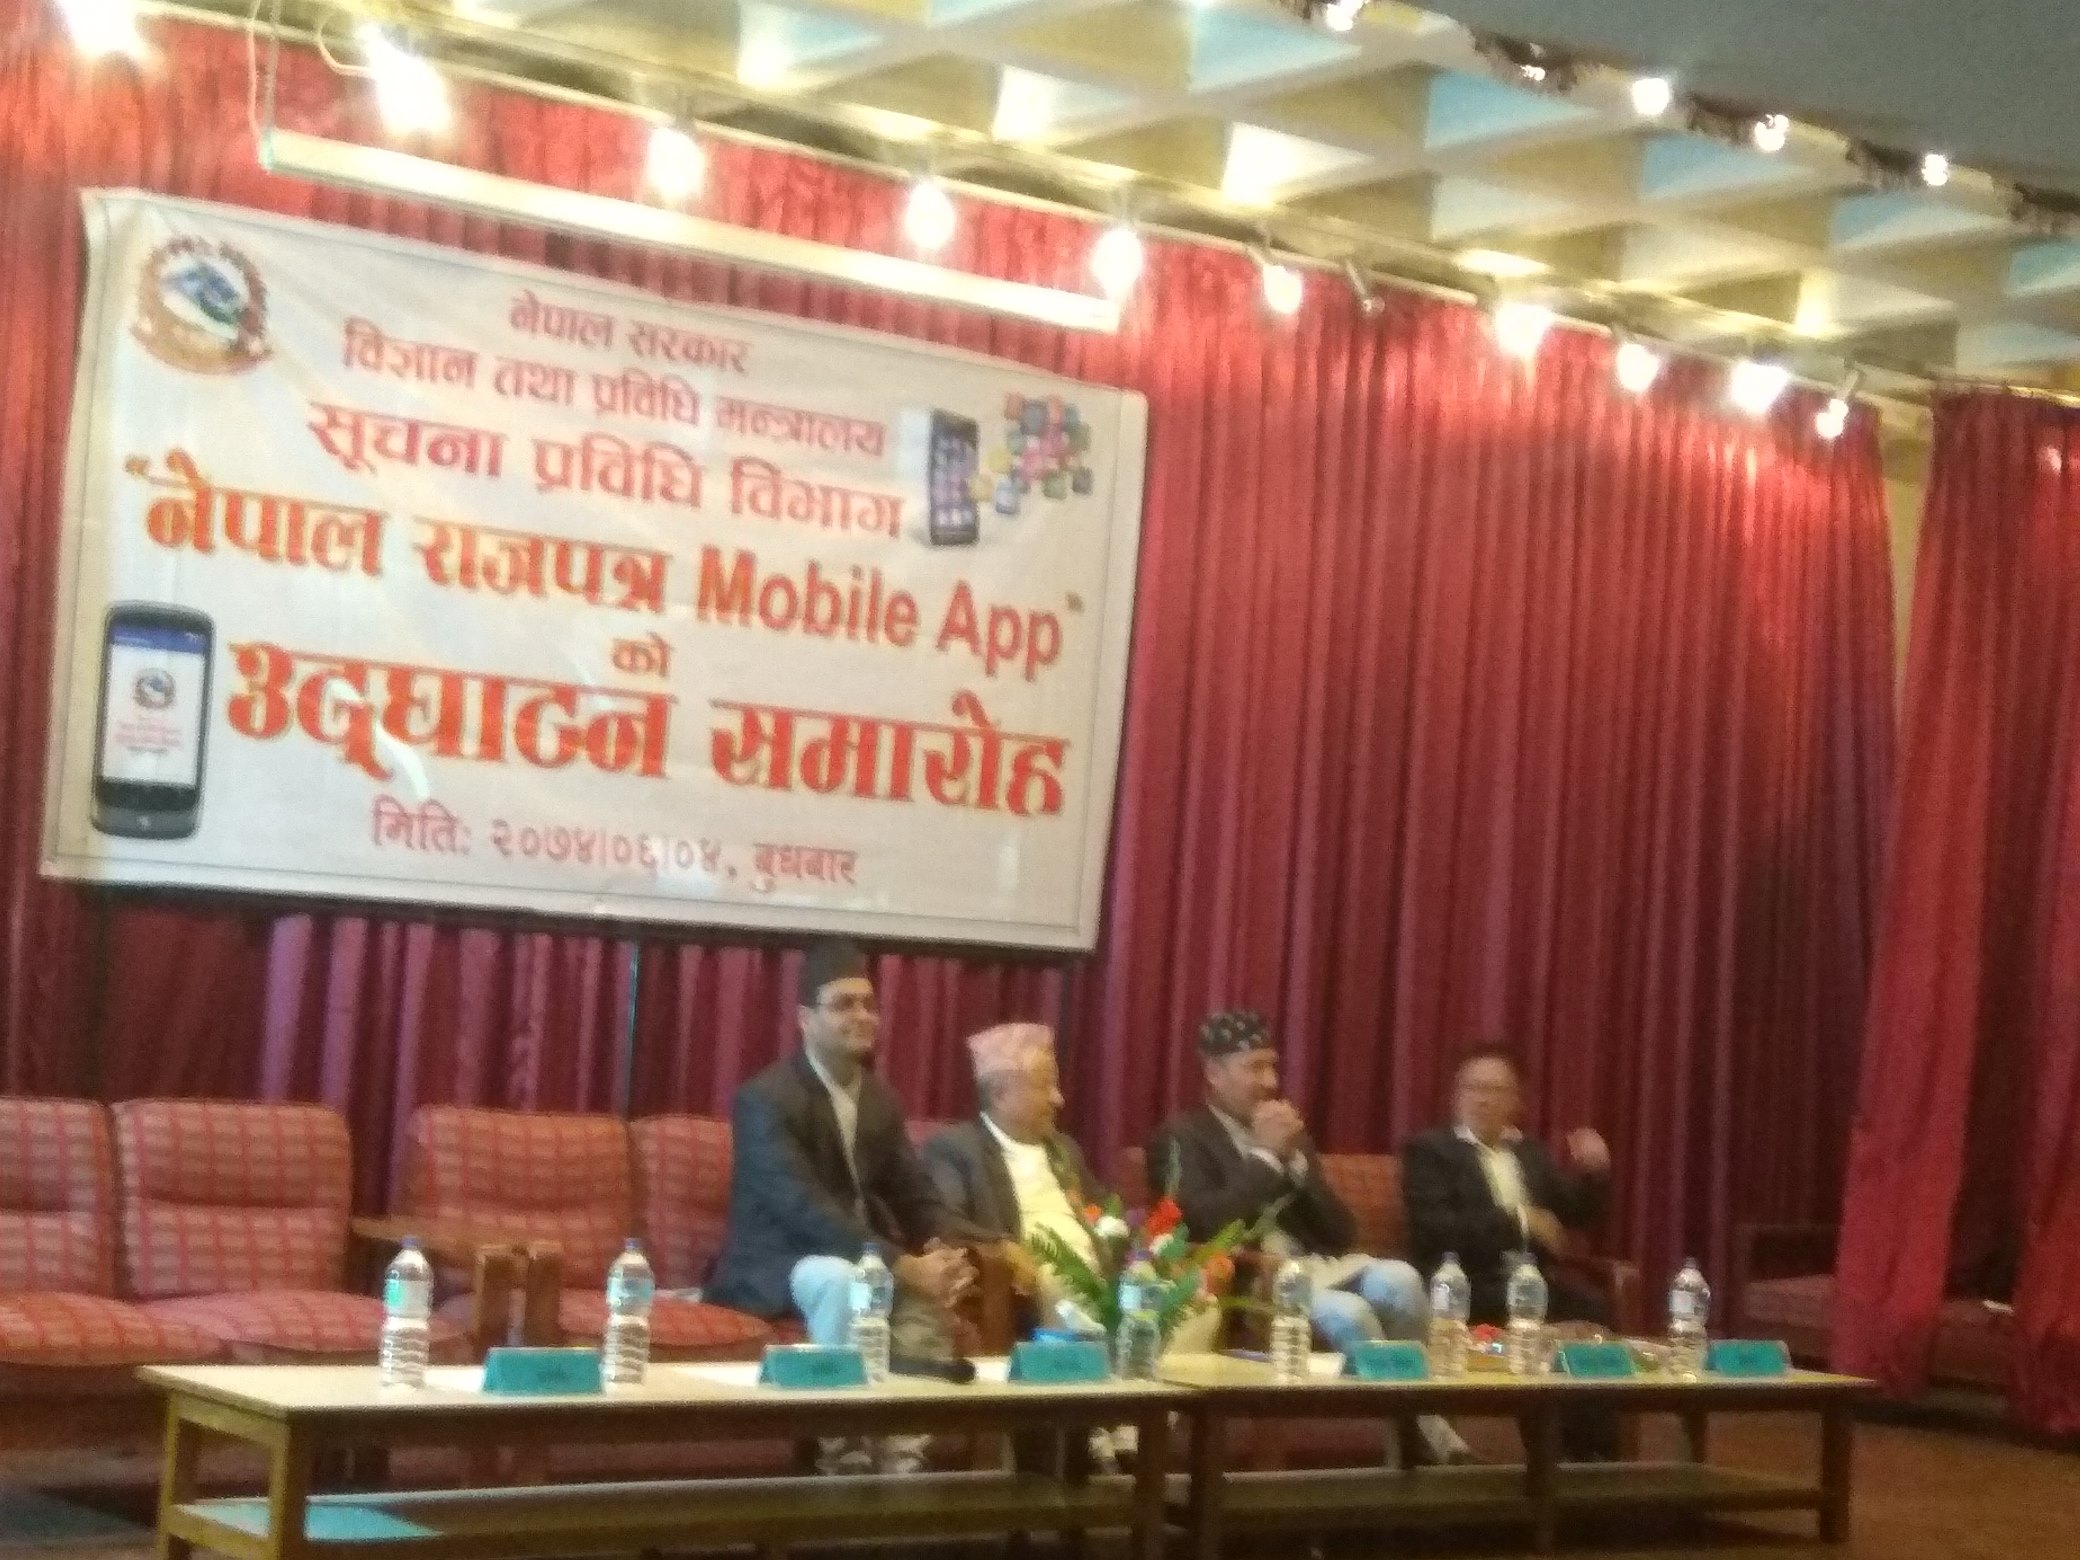 Mobile Application(Nepal Gazette) Launching Program